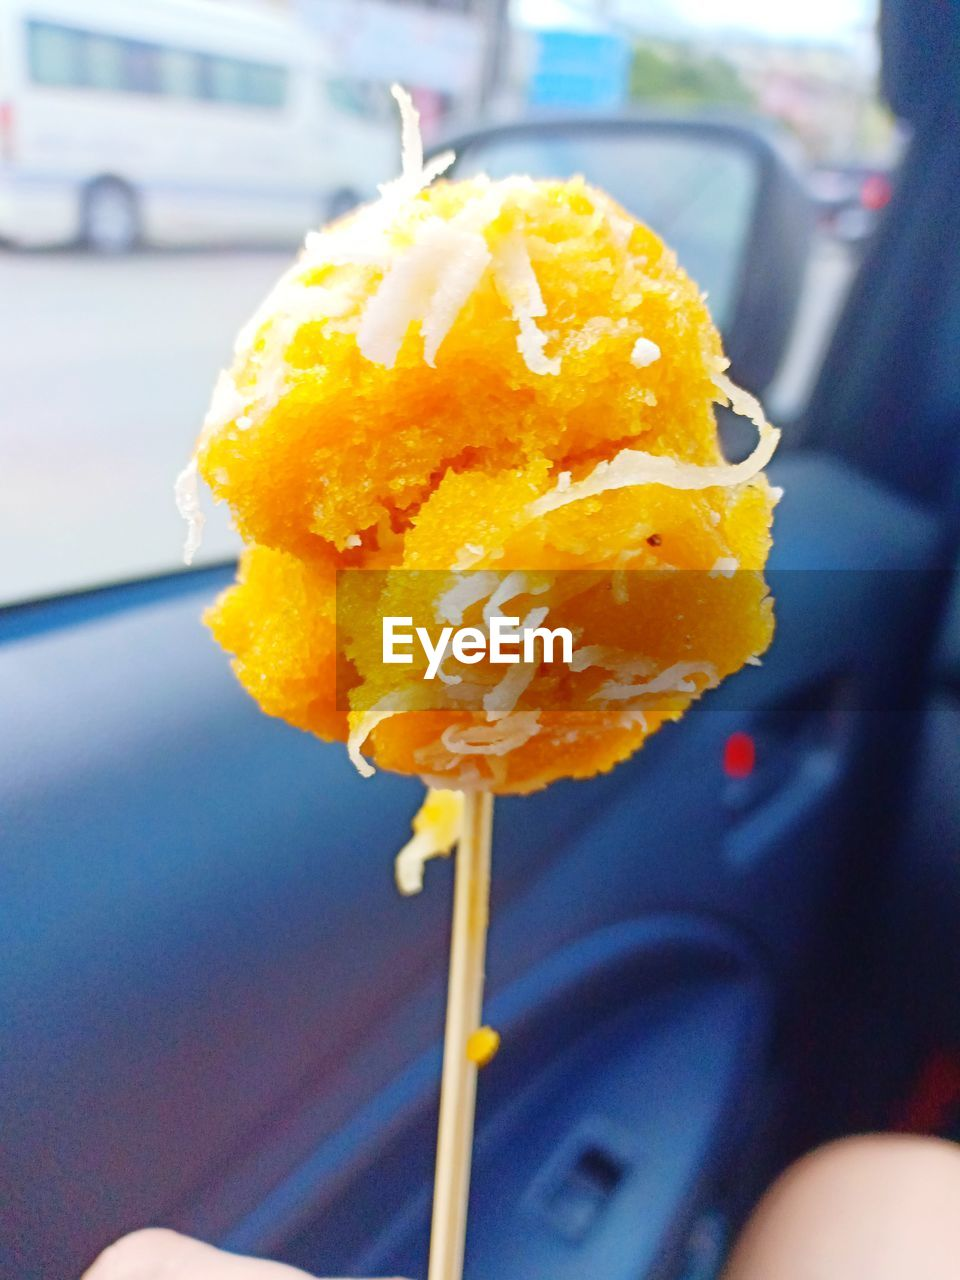 motor vehicle, car, yellow, mode of transportation, freshness, transportation, land vehicle, close-up, flower, focus on foreground, vehicle interior, flowering plant, food, food and drink, holding, one person, real people, sweet food, day, car interior, outdoors, flower head, temptation, snack